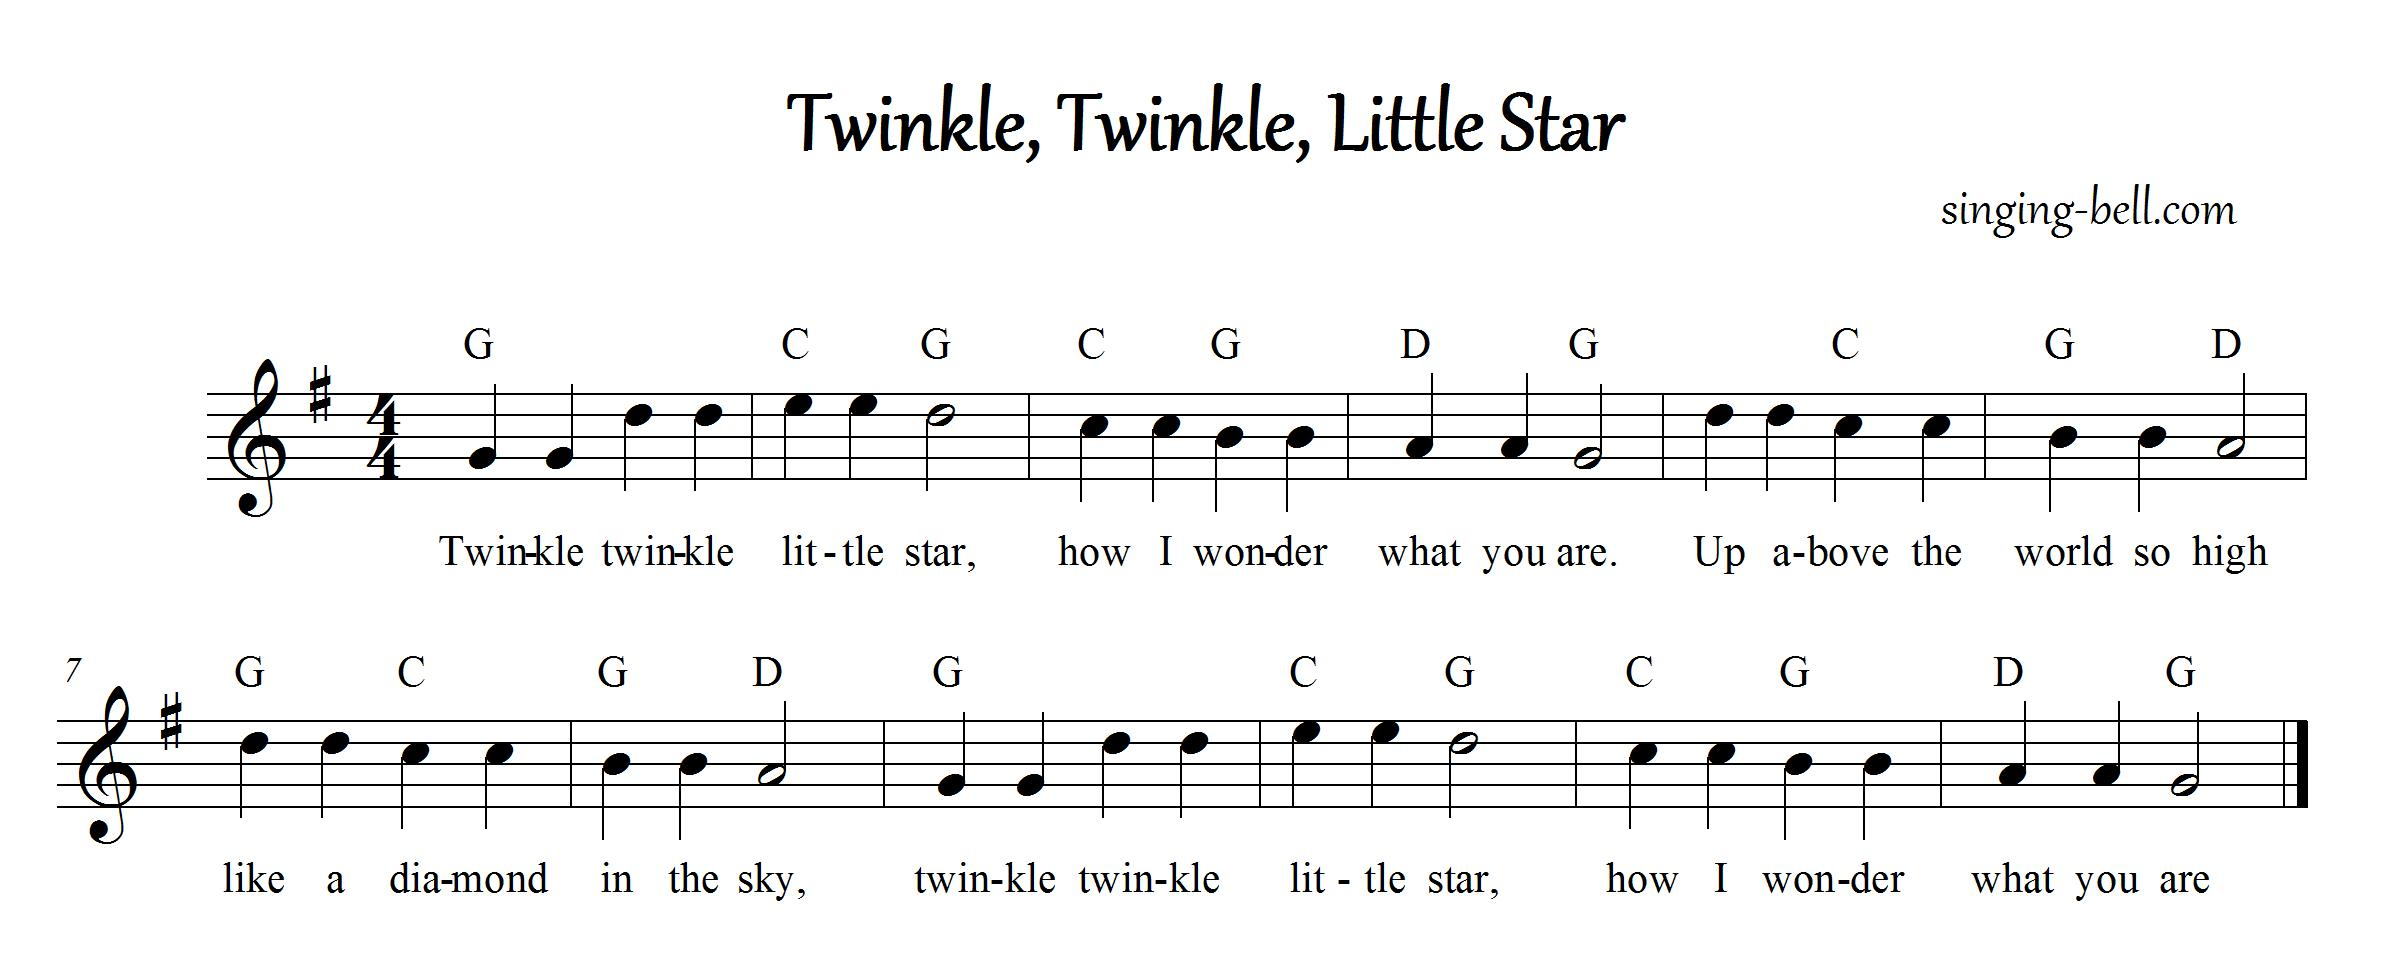 How to Play Twinkle Twinkle Little Star - Piano Notes